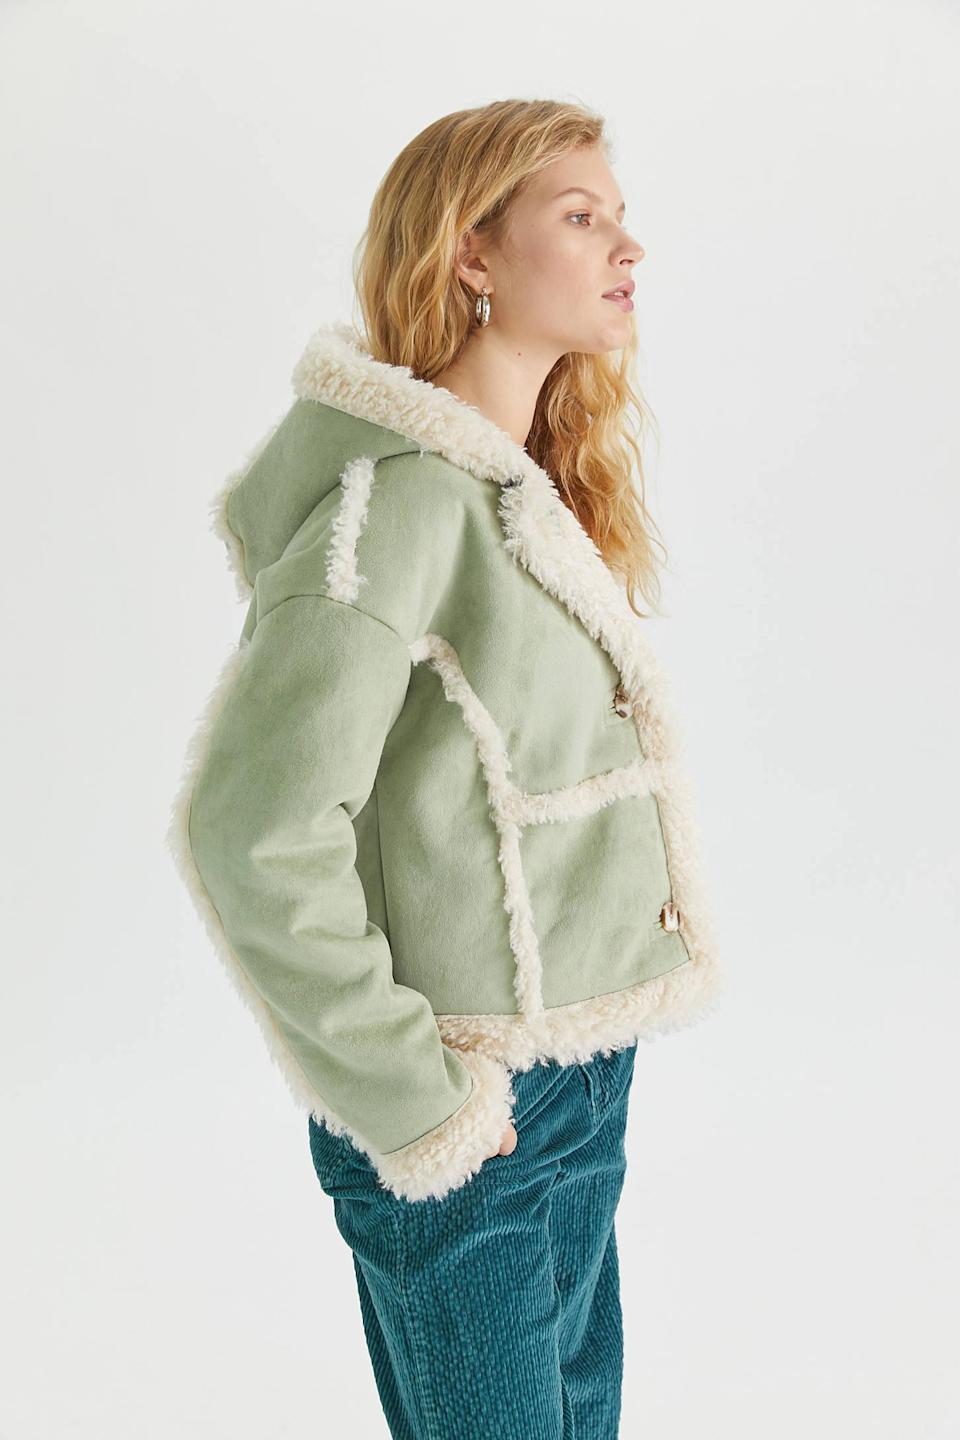 "<br><br><strong>Urban Outfitters</strong> Melanie Faux Shearling Jacket, $, available at <a href=""https://go.skimresources.com/?id=30283X879131&url=https%3A%2F%2Fwww.urbanoutfitters.com%2Fshop%2Fuo-melanie-faux-shearling-jacket"" rel=""nofollow noopener"" target=""_blank"" data-ylk=""slk:Urban Outfitters"" class=""link rapid-noclick-resp"">Urban Outfitters</a>"